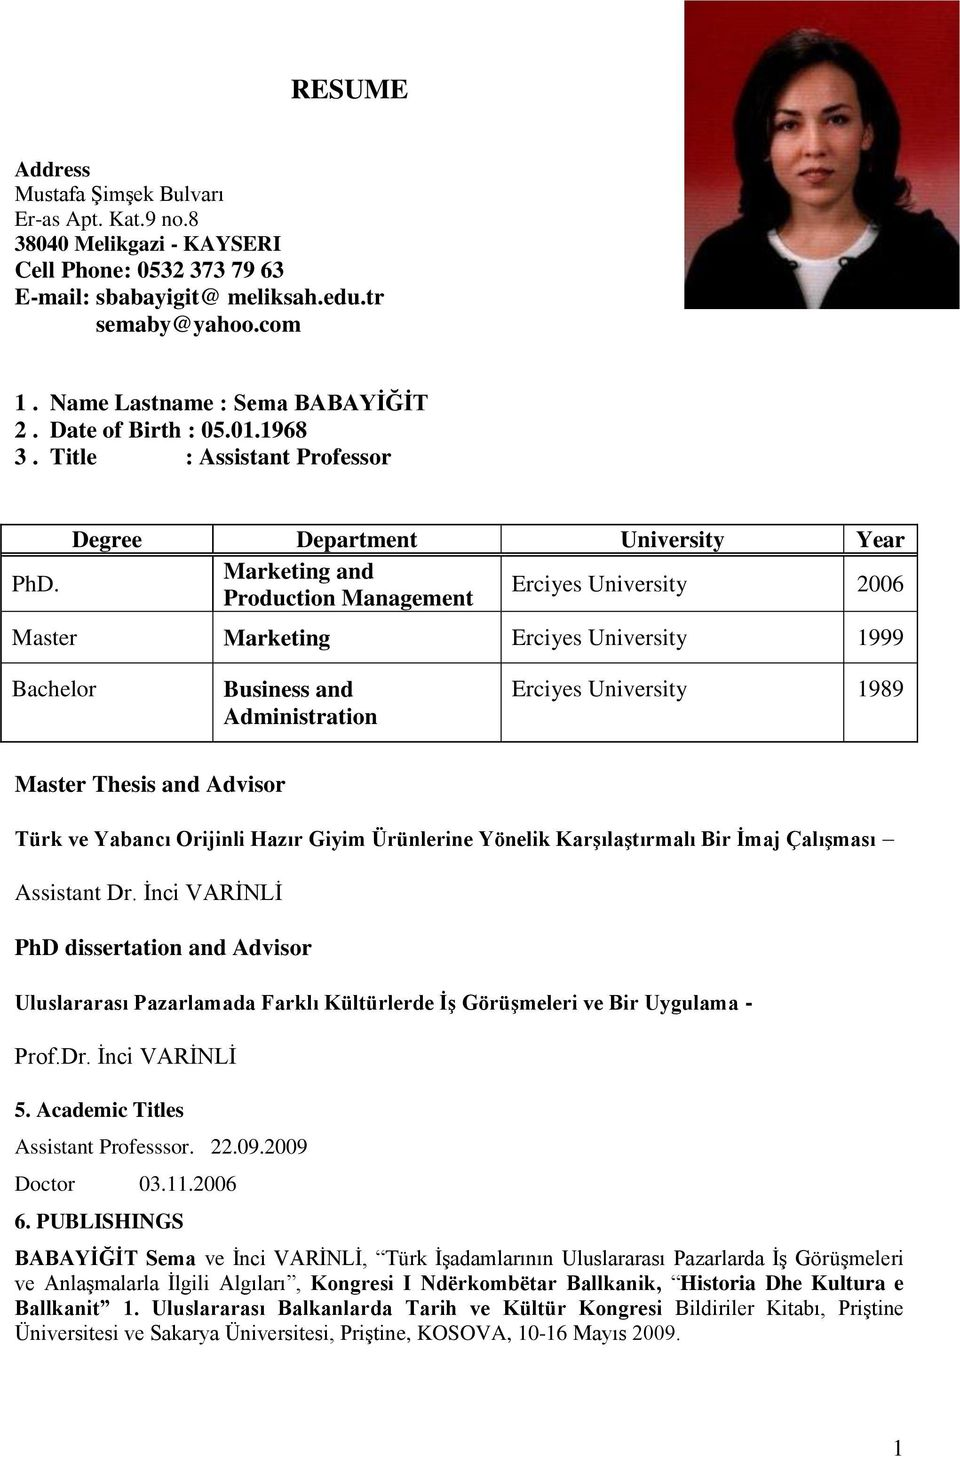 Erciyes University 006 Production Management Master Marketing Erciyes University 1999 Bachelor Business and Administration Erciyes University 1989 Master Thesis and Advisor Türk ve Yabancı Orijinli